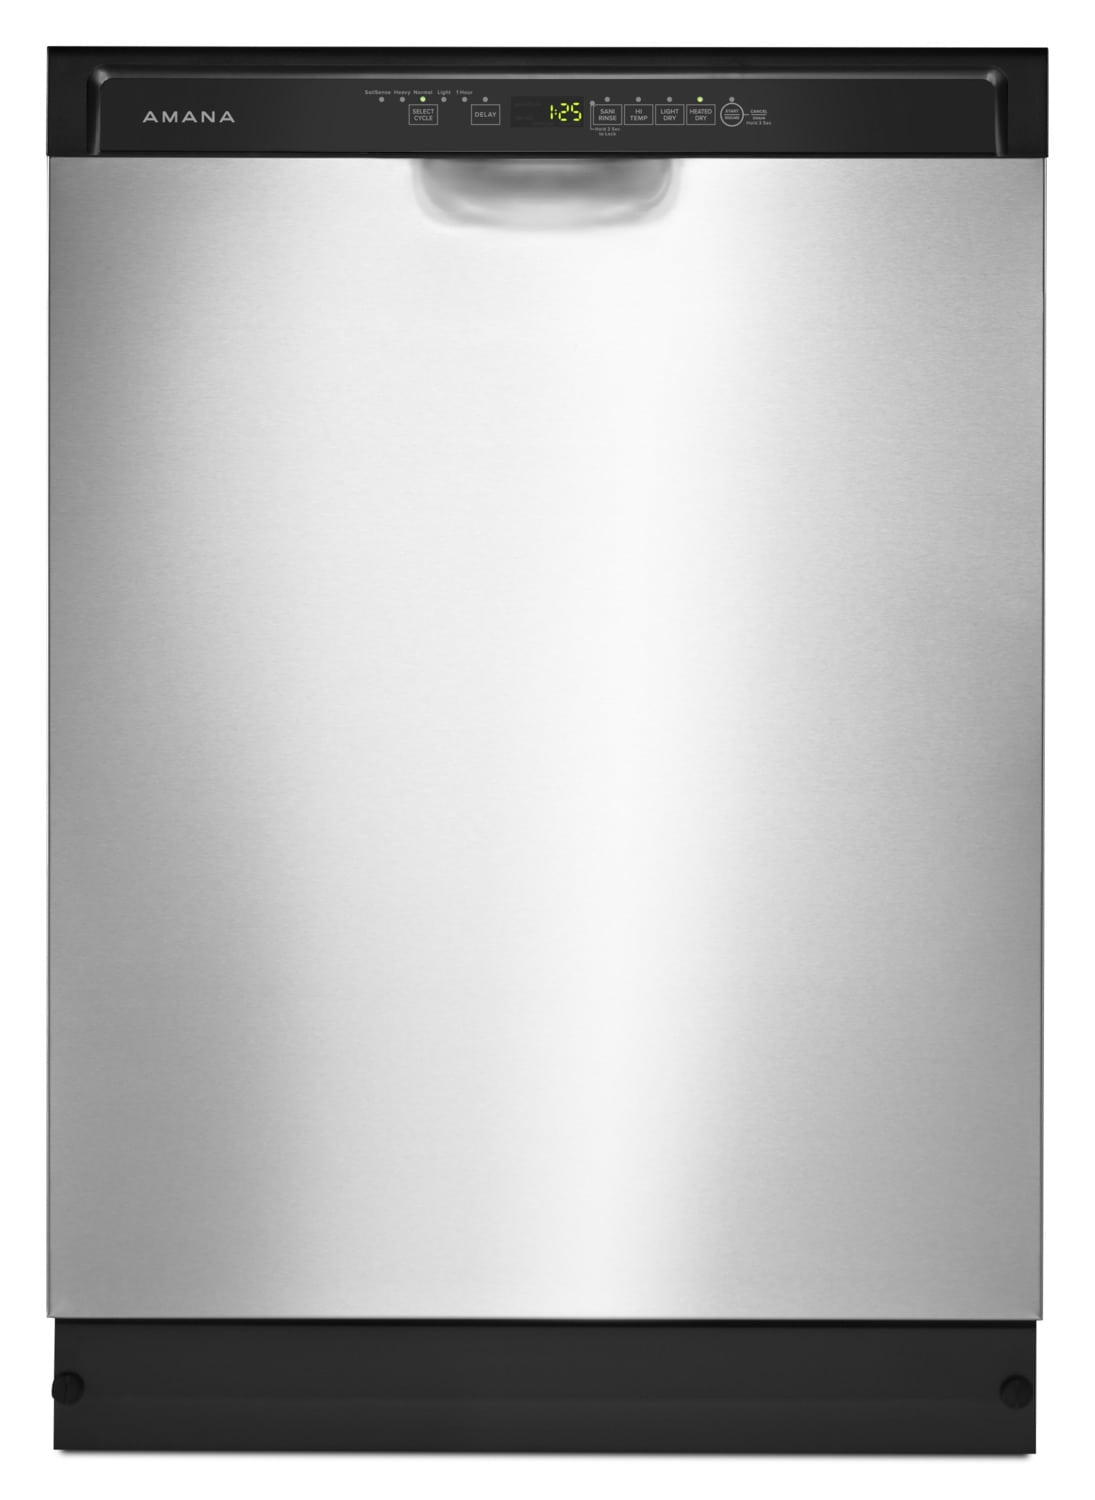 Amana Tall-Tub Built-In Dishwasher with Stainless Steel Interior – ADB1700ADS